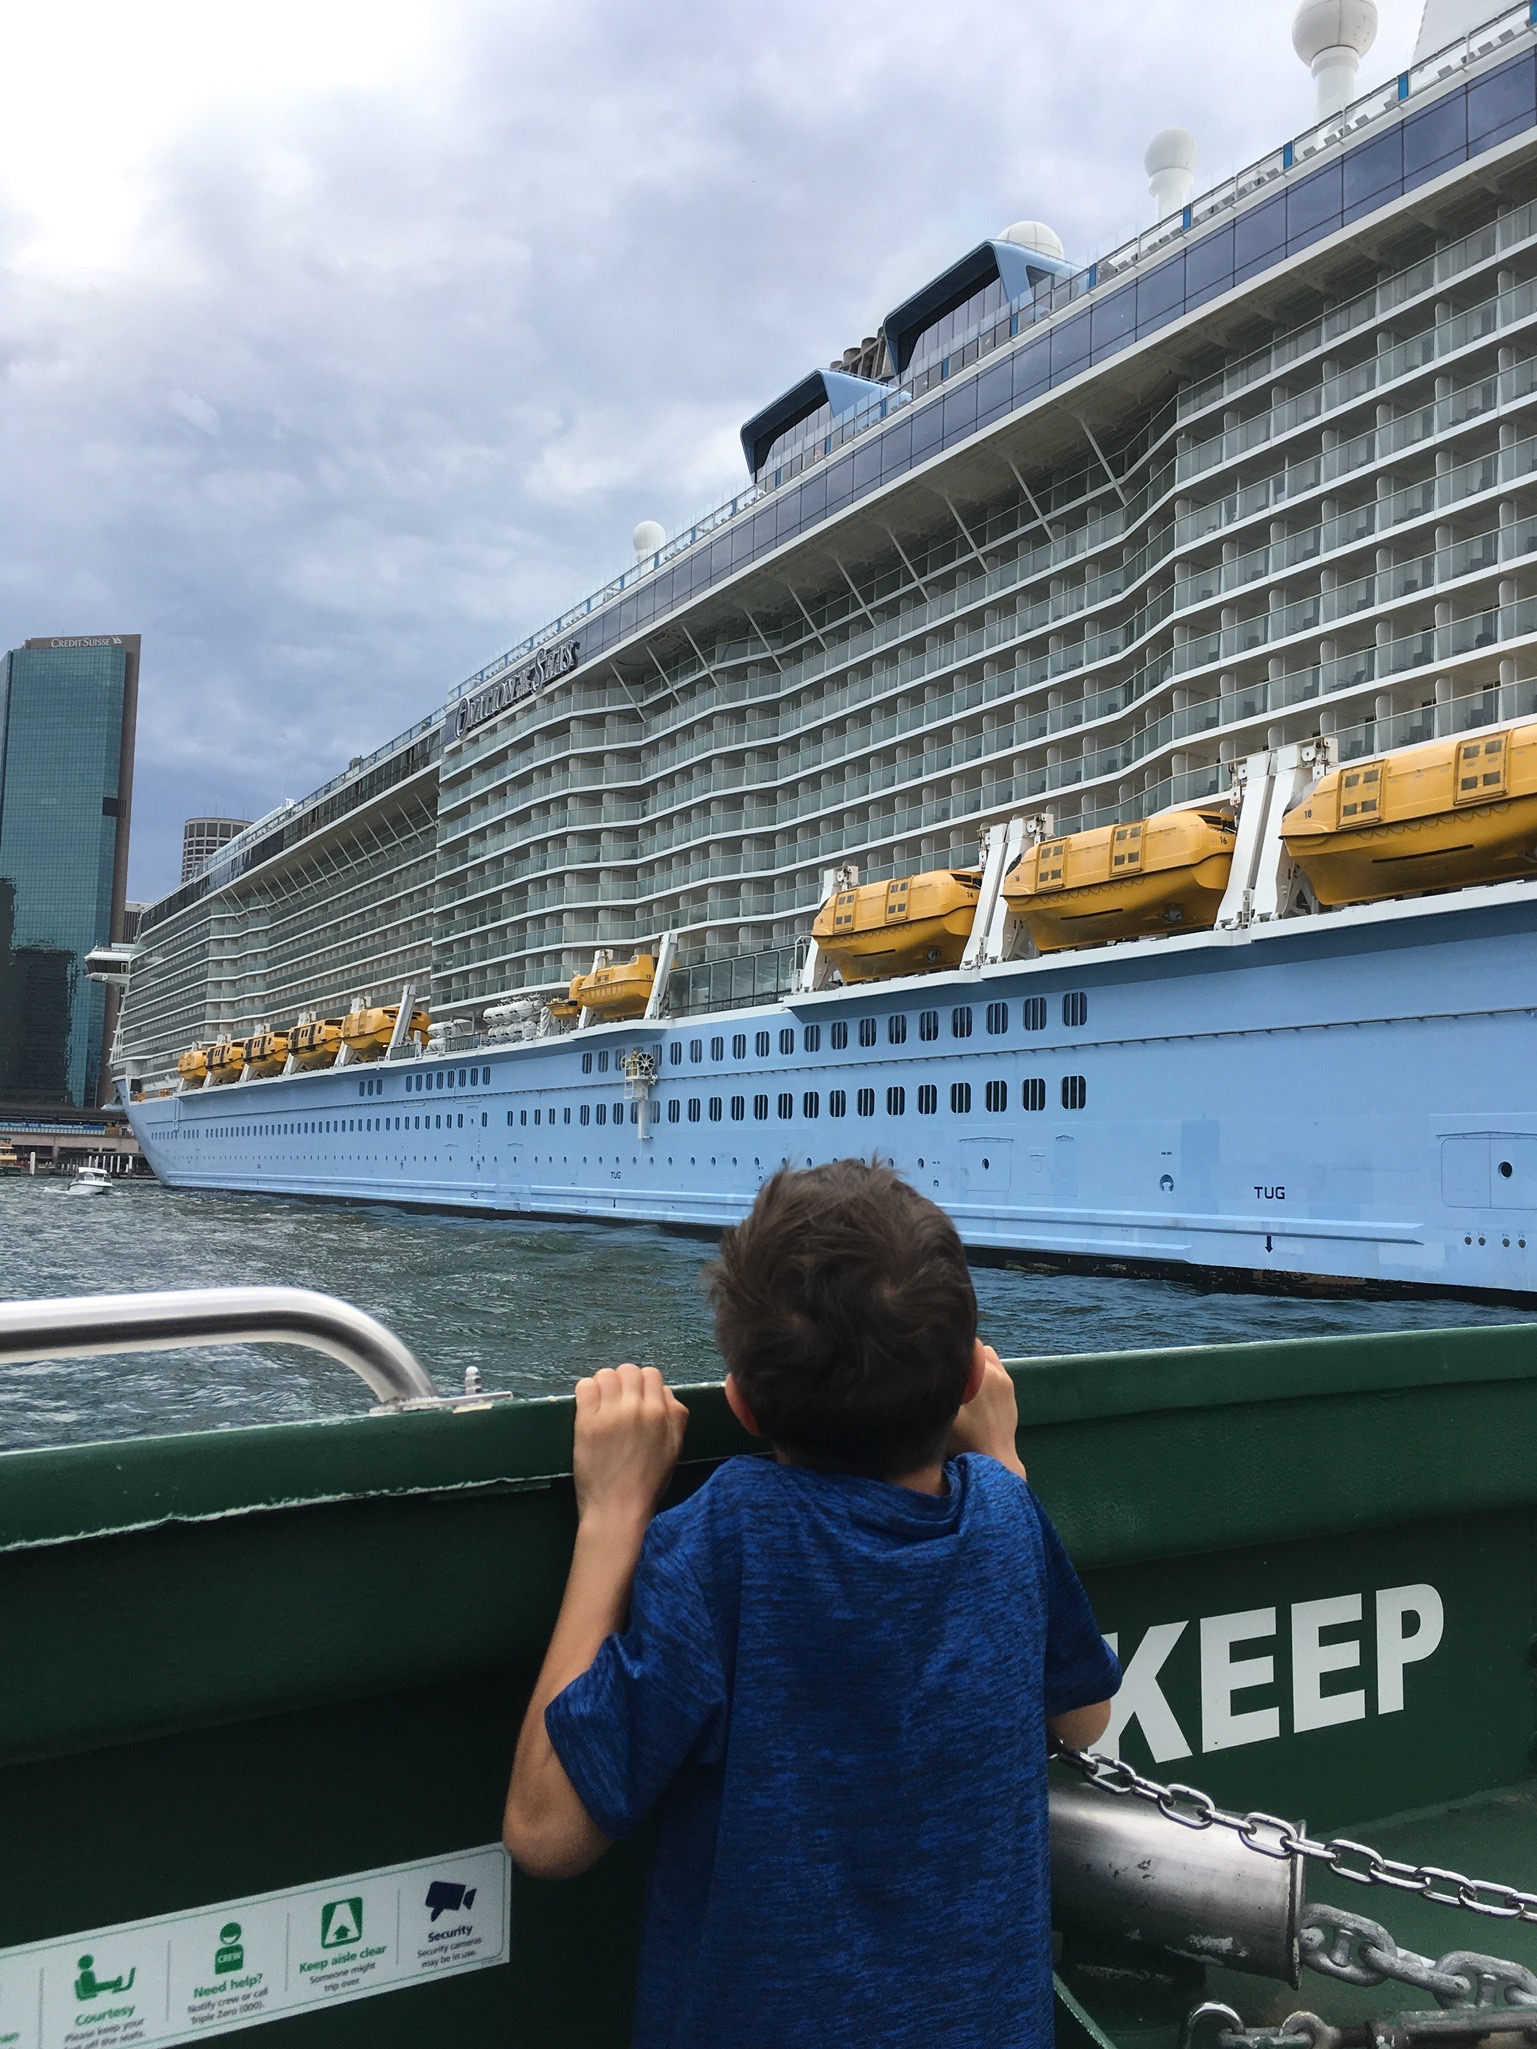 Giant cruise ship in Sydney harbour